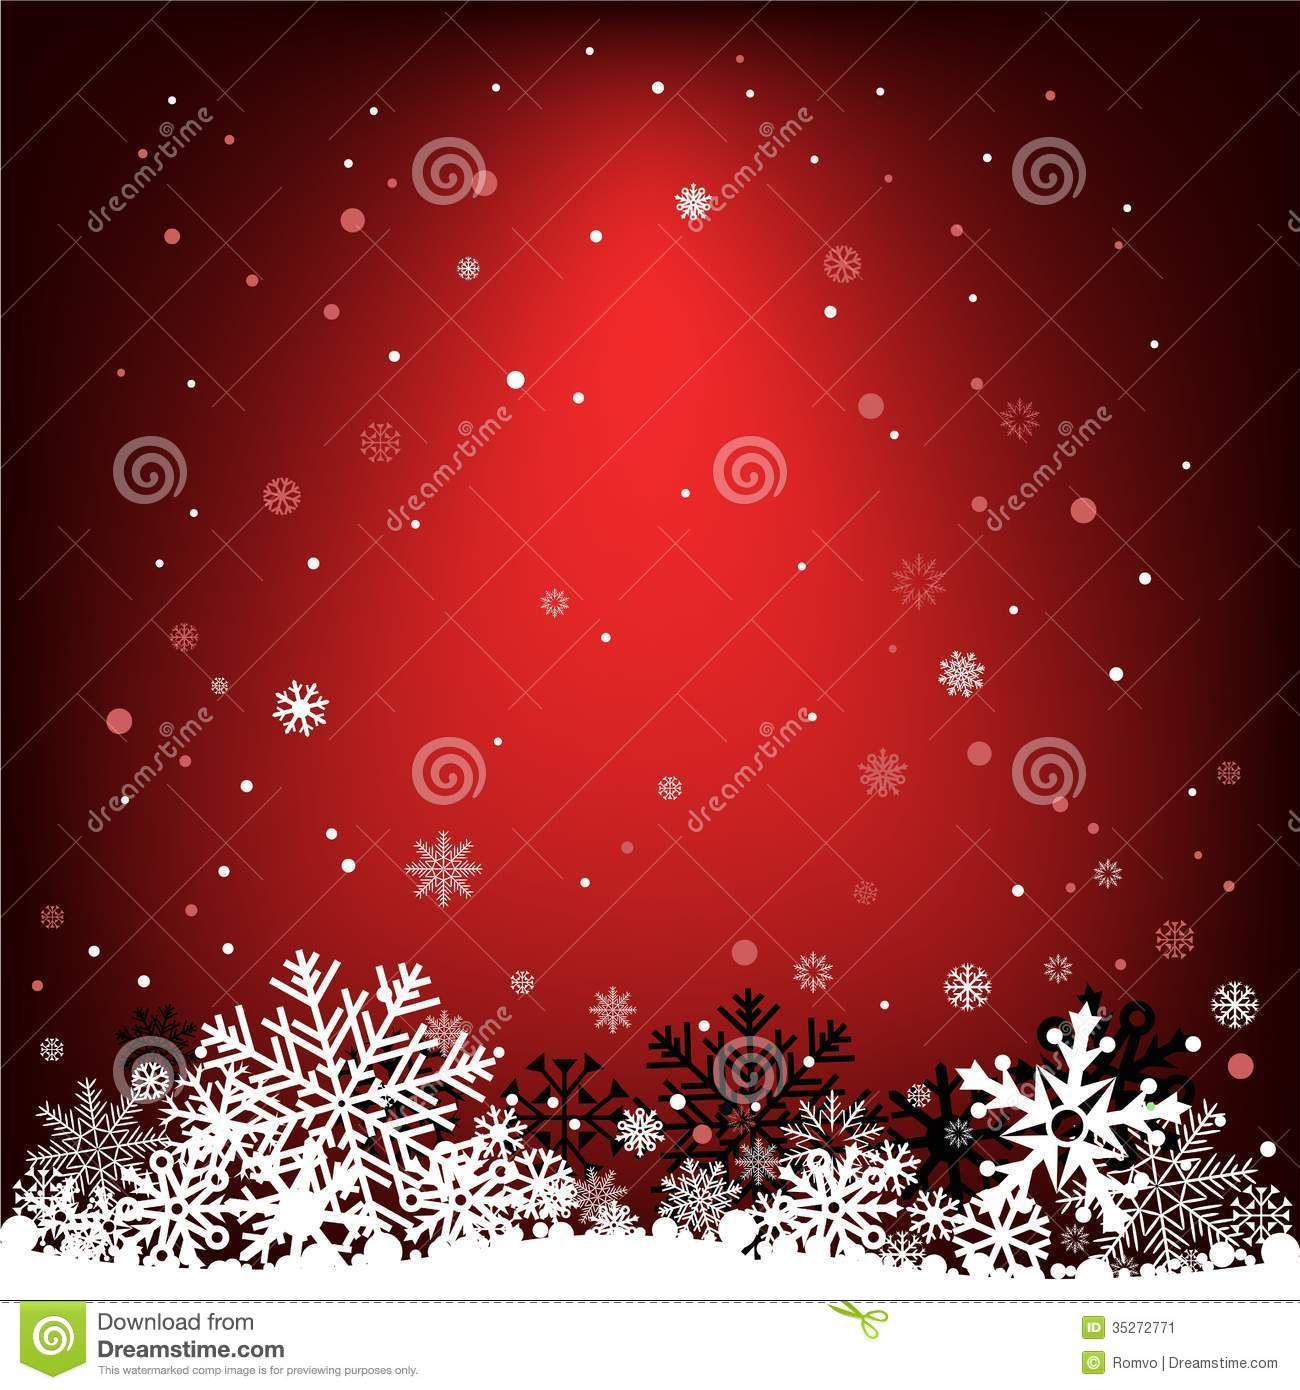 red snow christmas background - photo #38